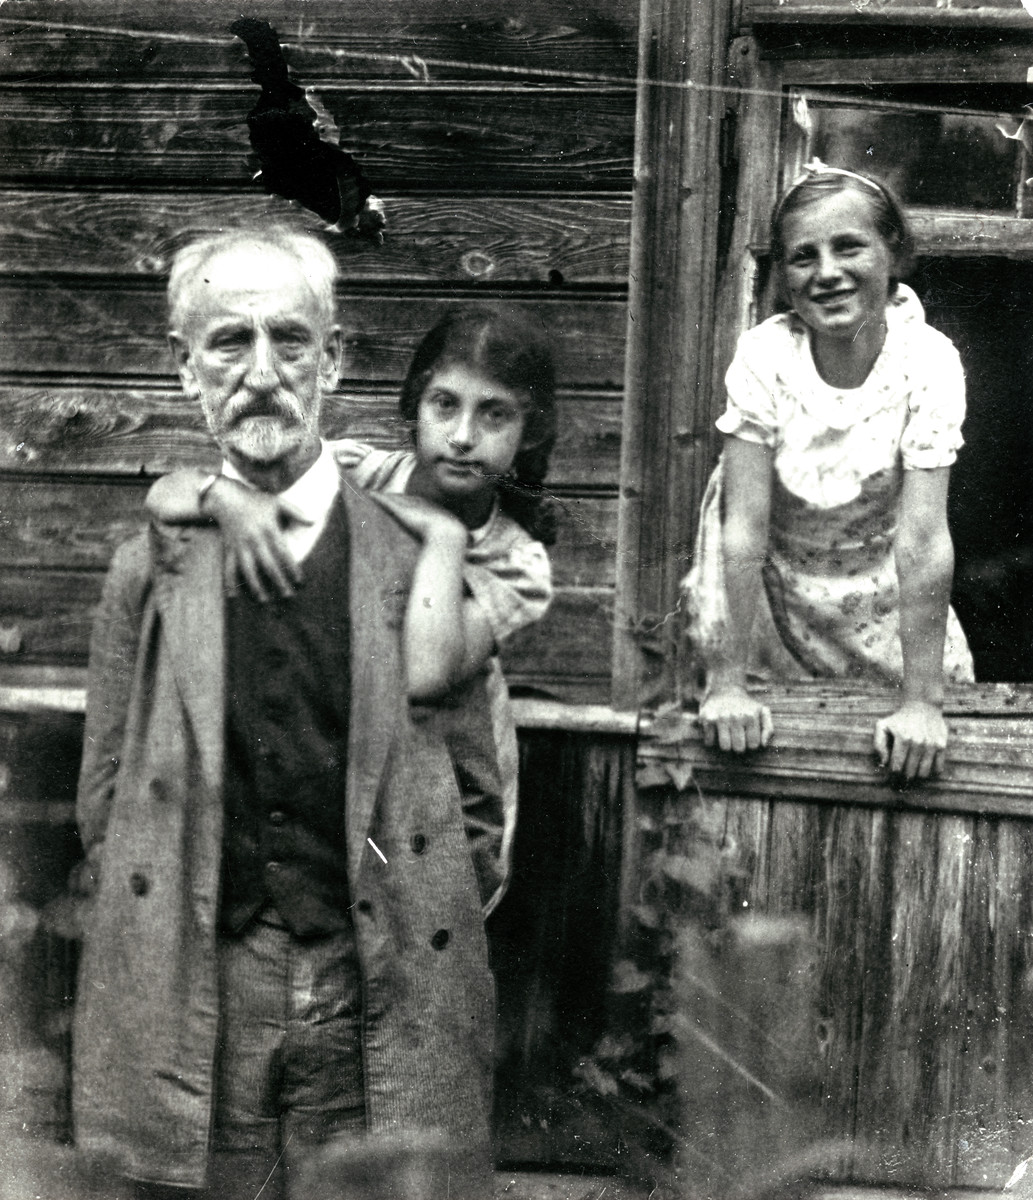 Tamara Magid leans against her grandfather David Magid at a summer resort, while a neighbor stands behind them.